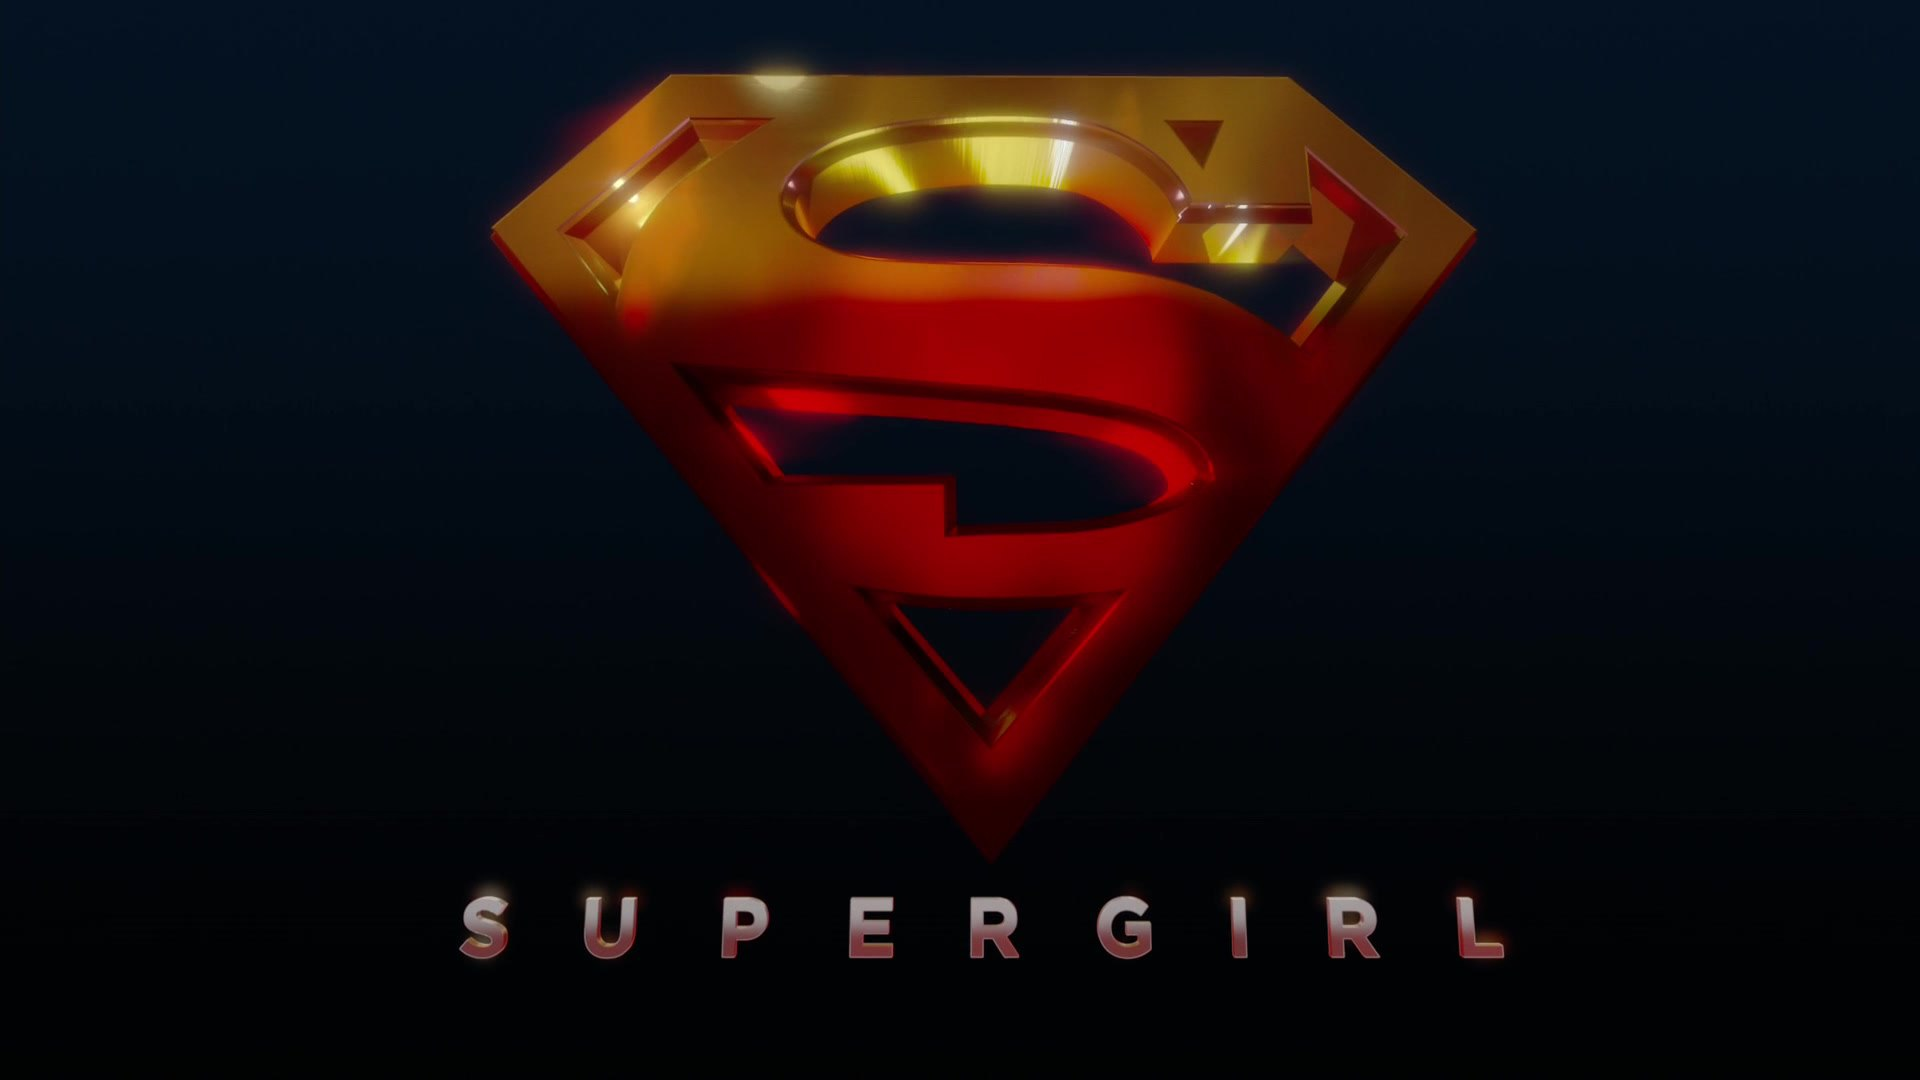 Supergirl (TV Series) Episode: Hostile Takeover